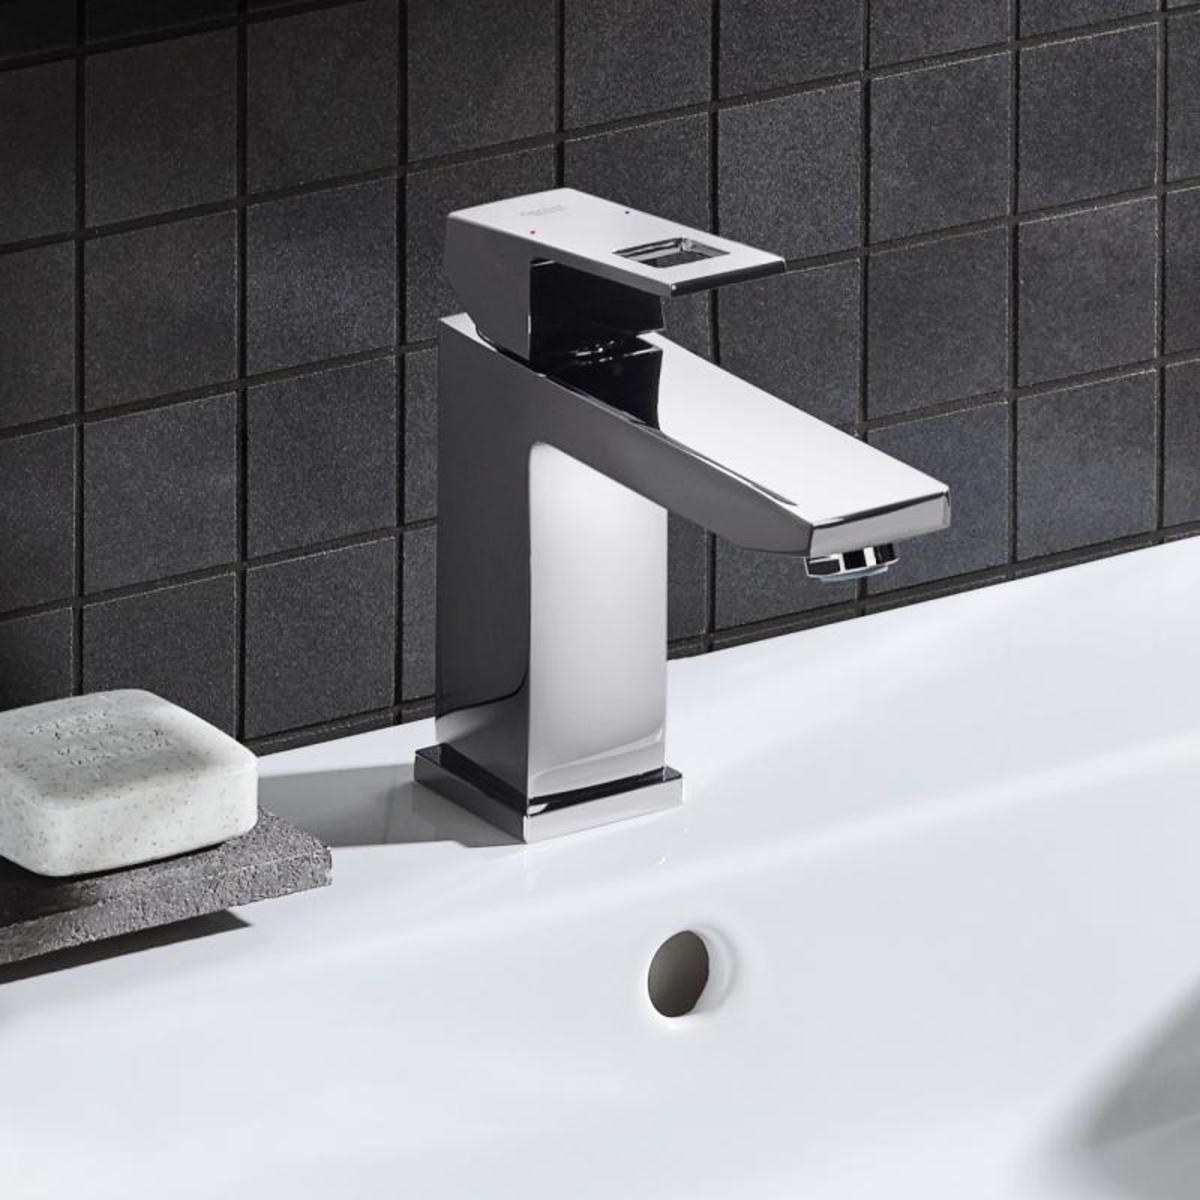 grohe eurocube wastafelkraan medium met waste 28mm met temperatuurbegrenzer chroom 23445000. Black Bedroom Furniture Sets. Home Design Ideas